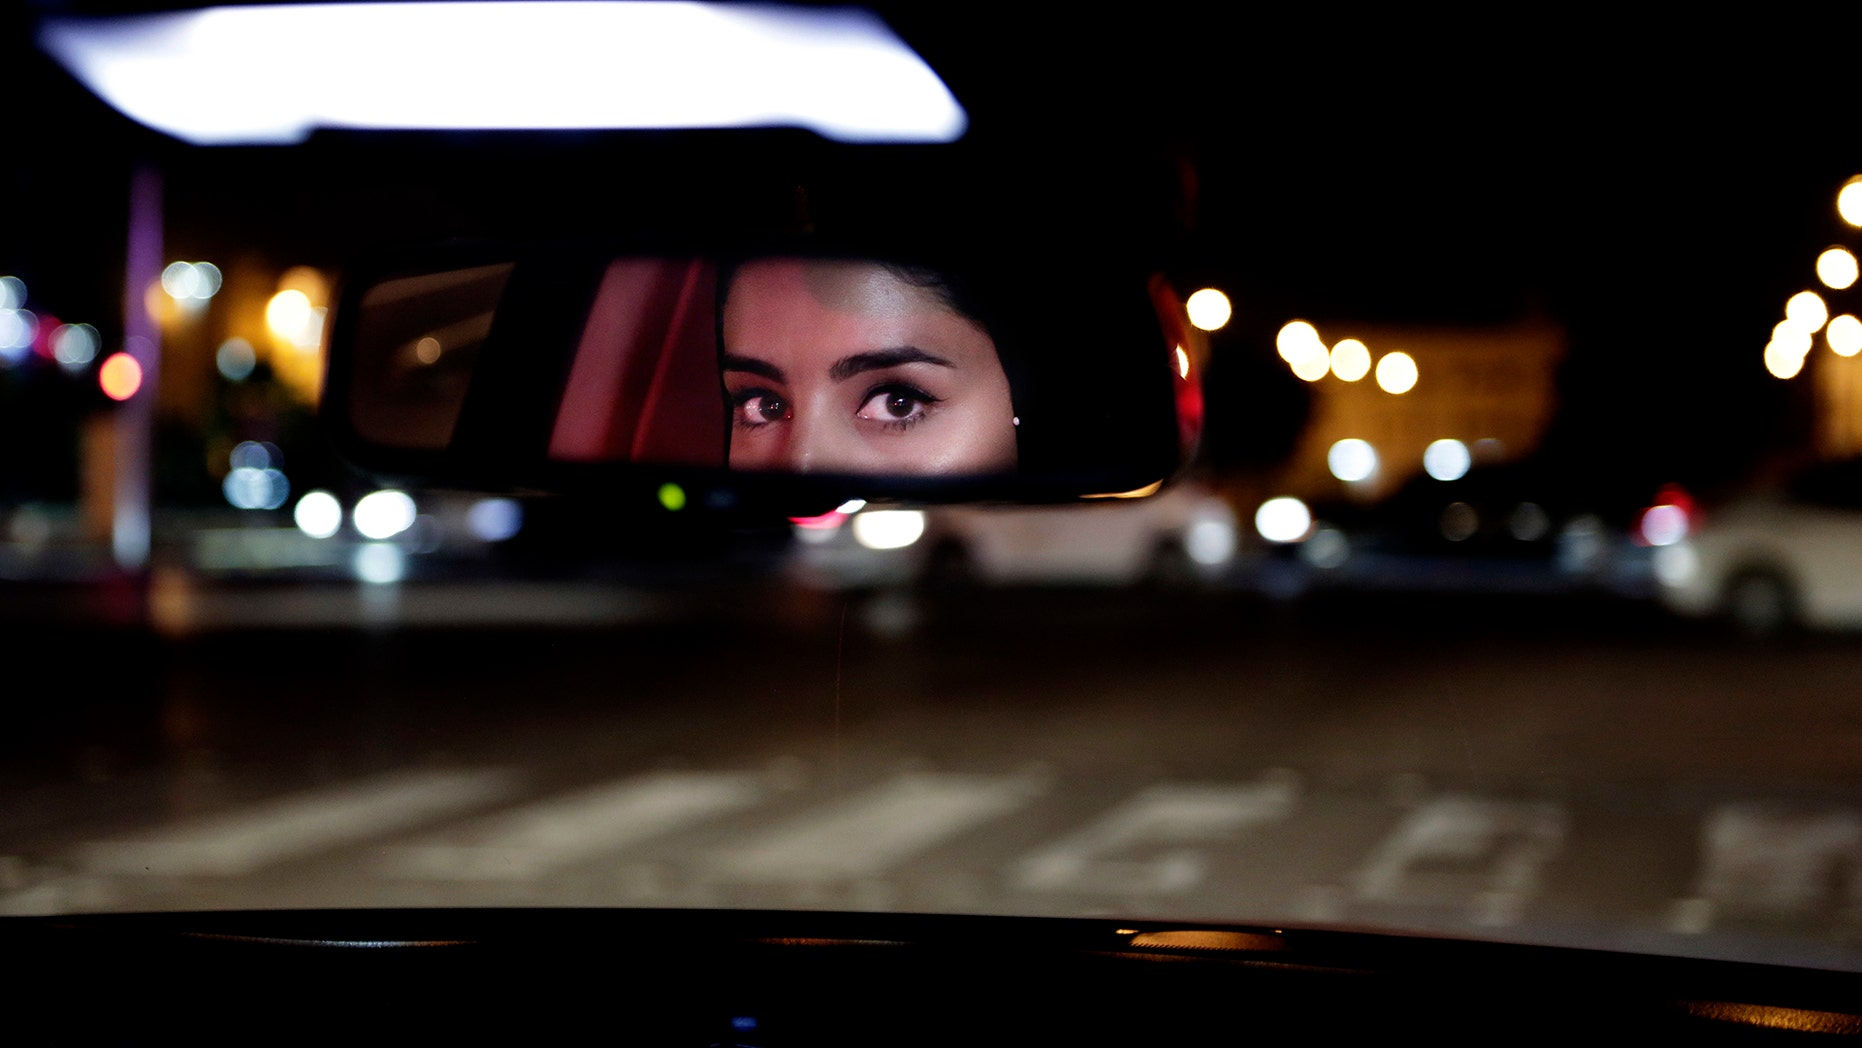 FILE - In this Sunday, June 24, 2018 file photo, Hessah al-Ajaji drives her car down the capital's busy Tahlia Street after midnight for the first time, in Riyadh, Saudi Arabia. Saudi women are driving freely for the first time after years of risking arrest if they dared to get behind the wheel.  (AP Photo/Nariman El-Mofty, File)